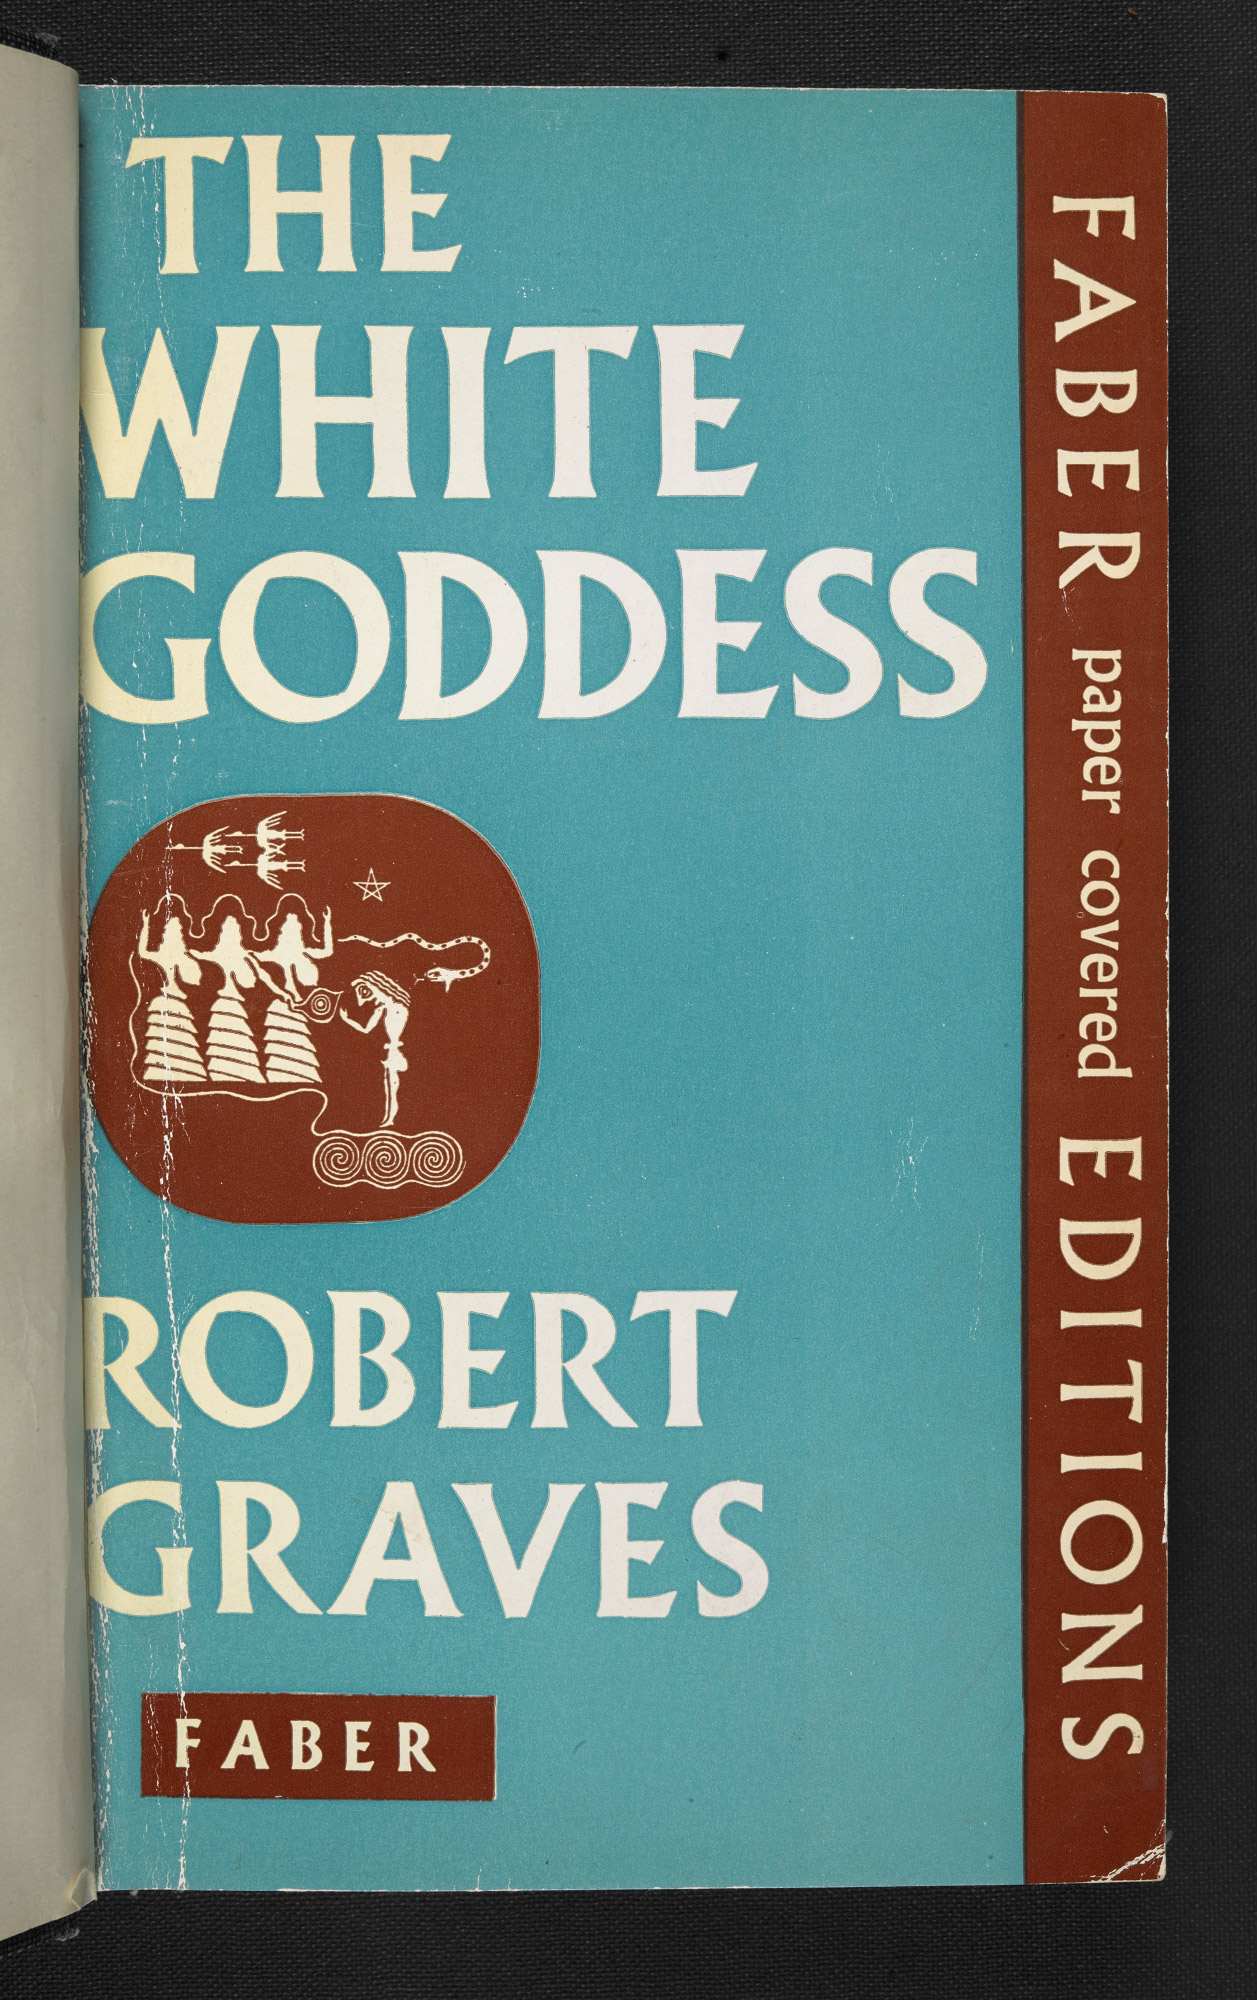 The White Goddess by Robert Graves